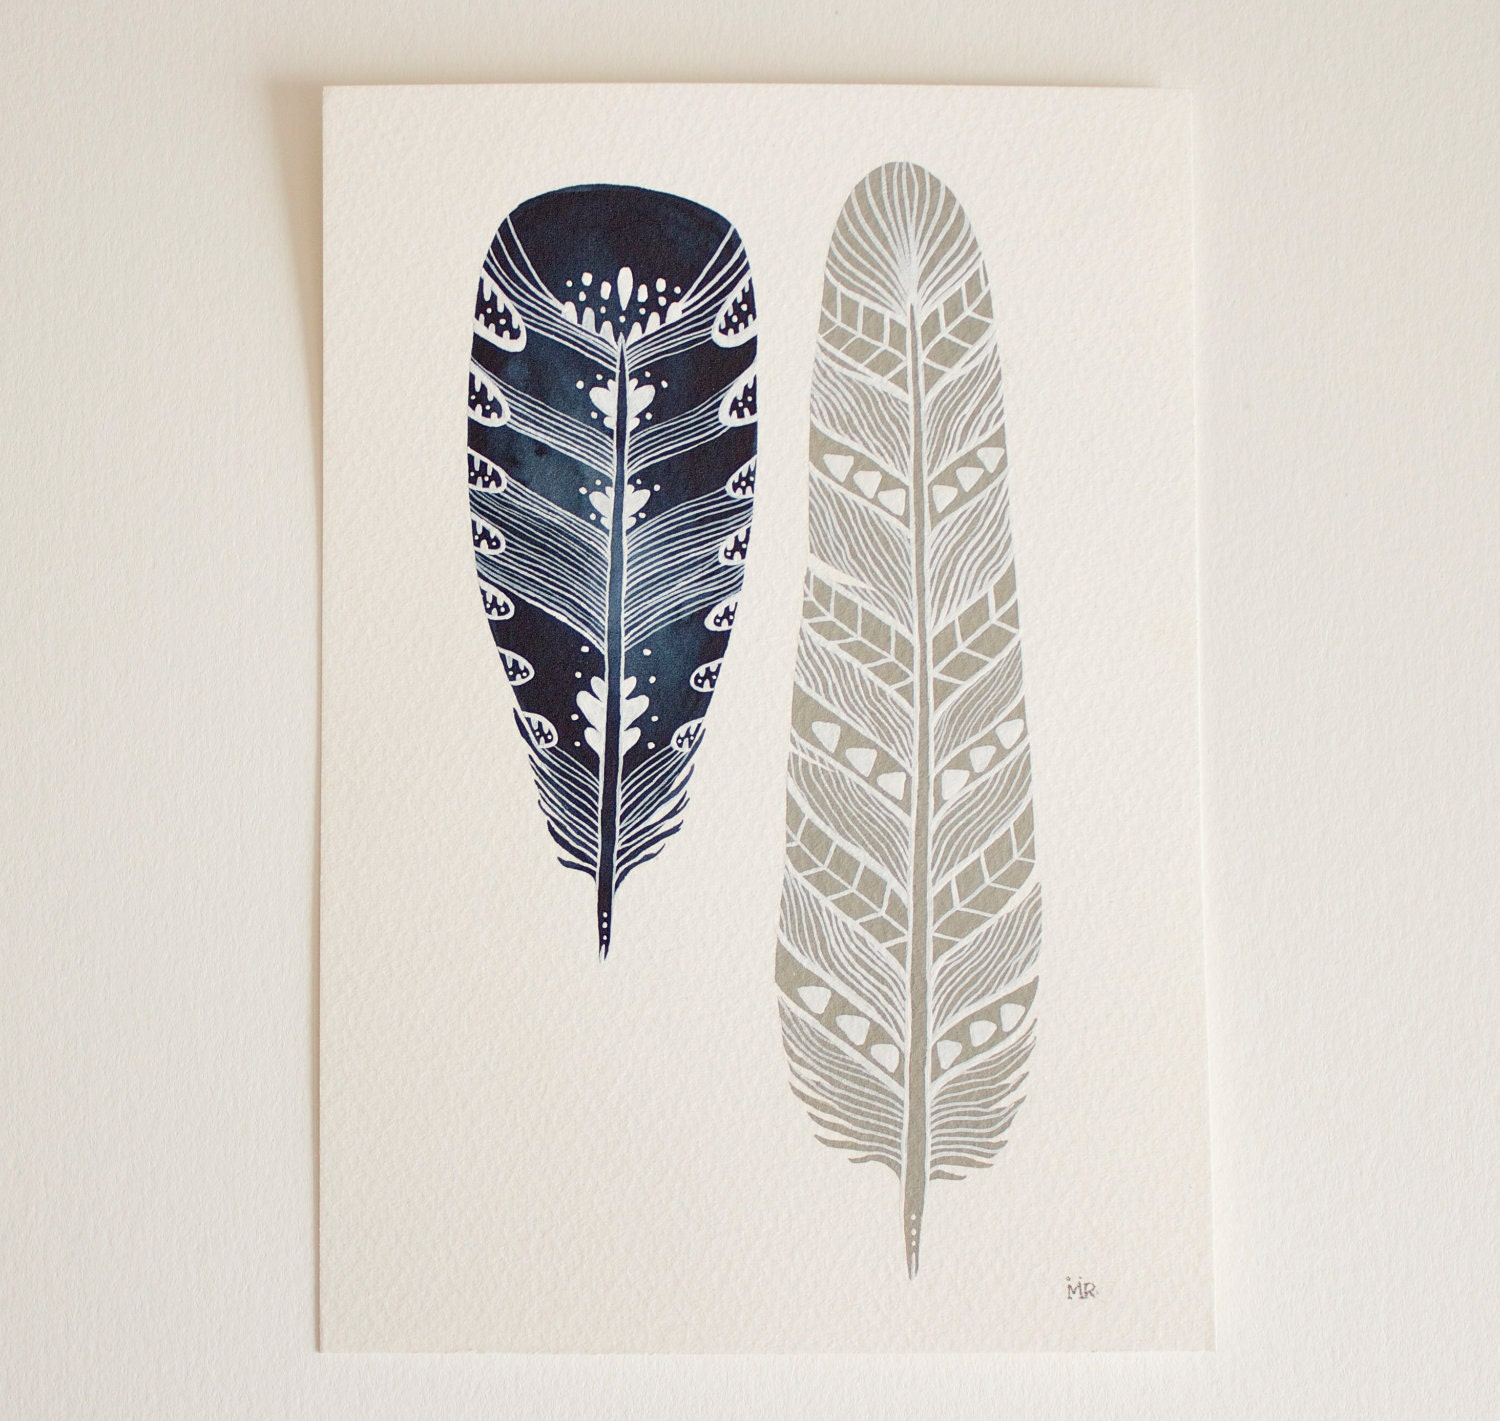 Feather Art Painting - Watercolor Art - Archival Print Mila Feathers - RiverLuna - RiverLuna